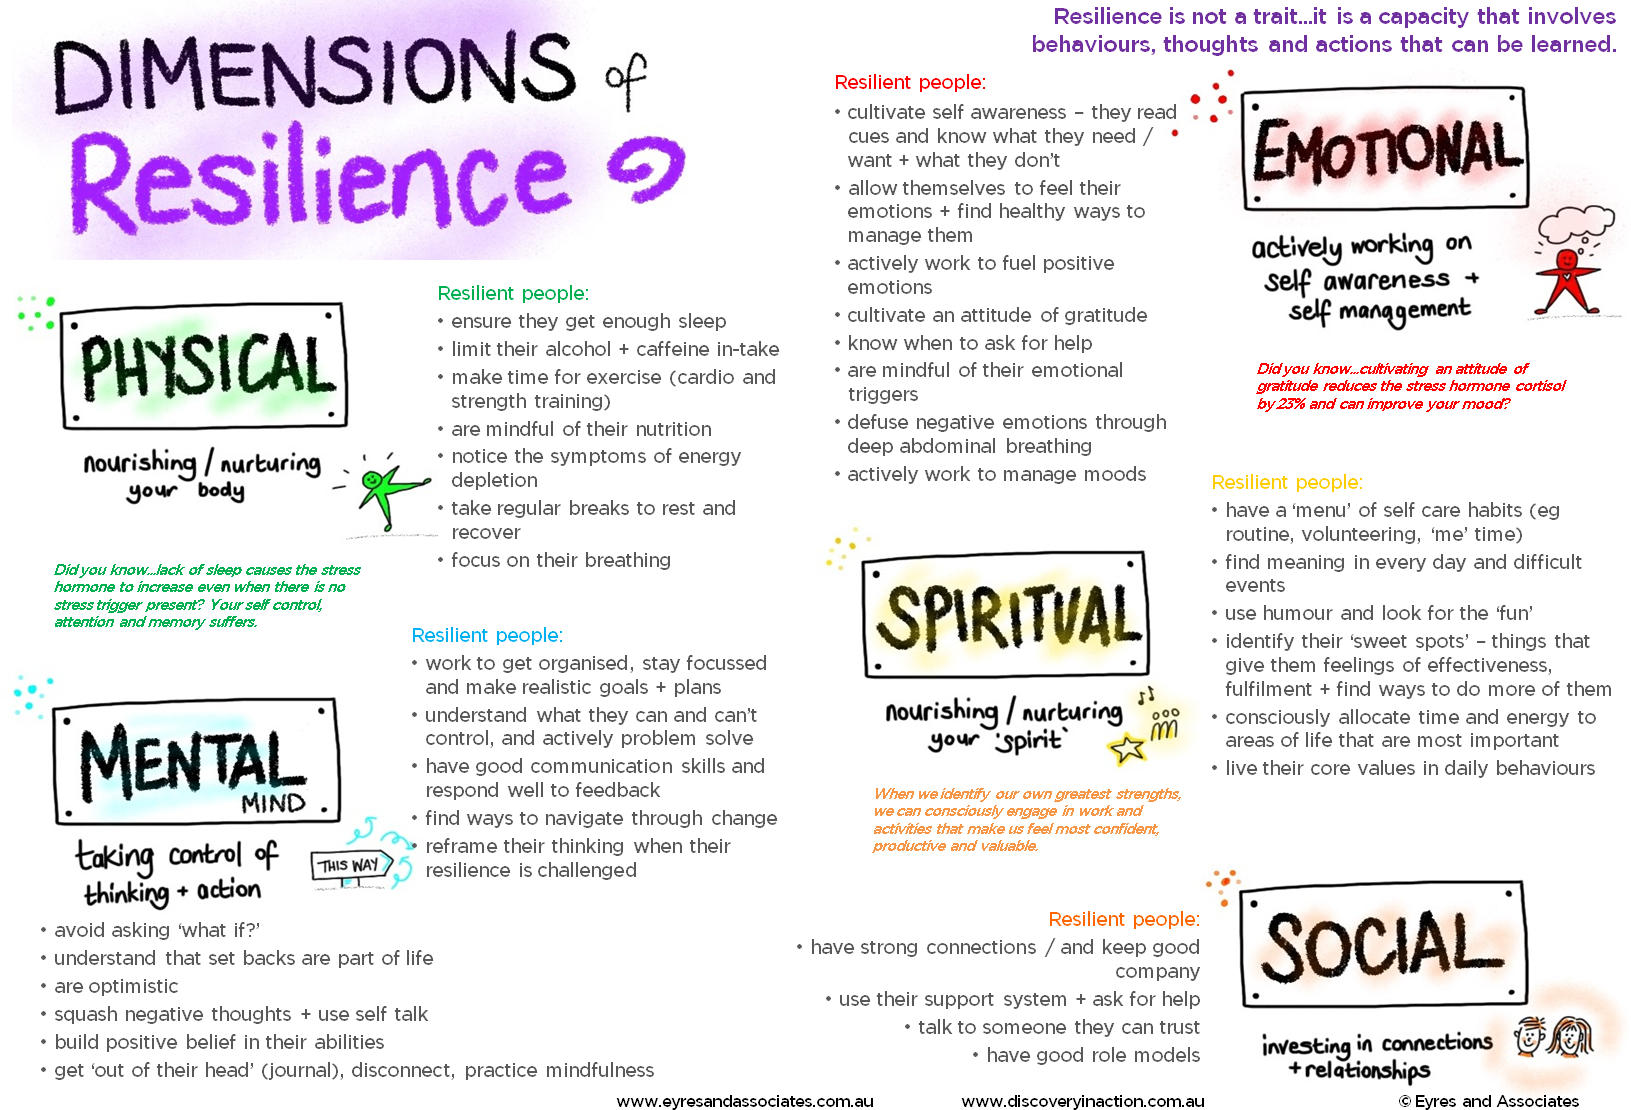 Dimensions of Resilience model_pastedtoGIMP